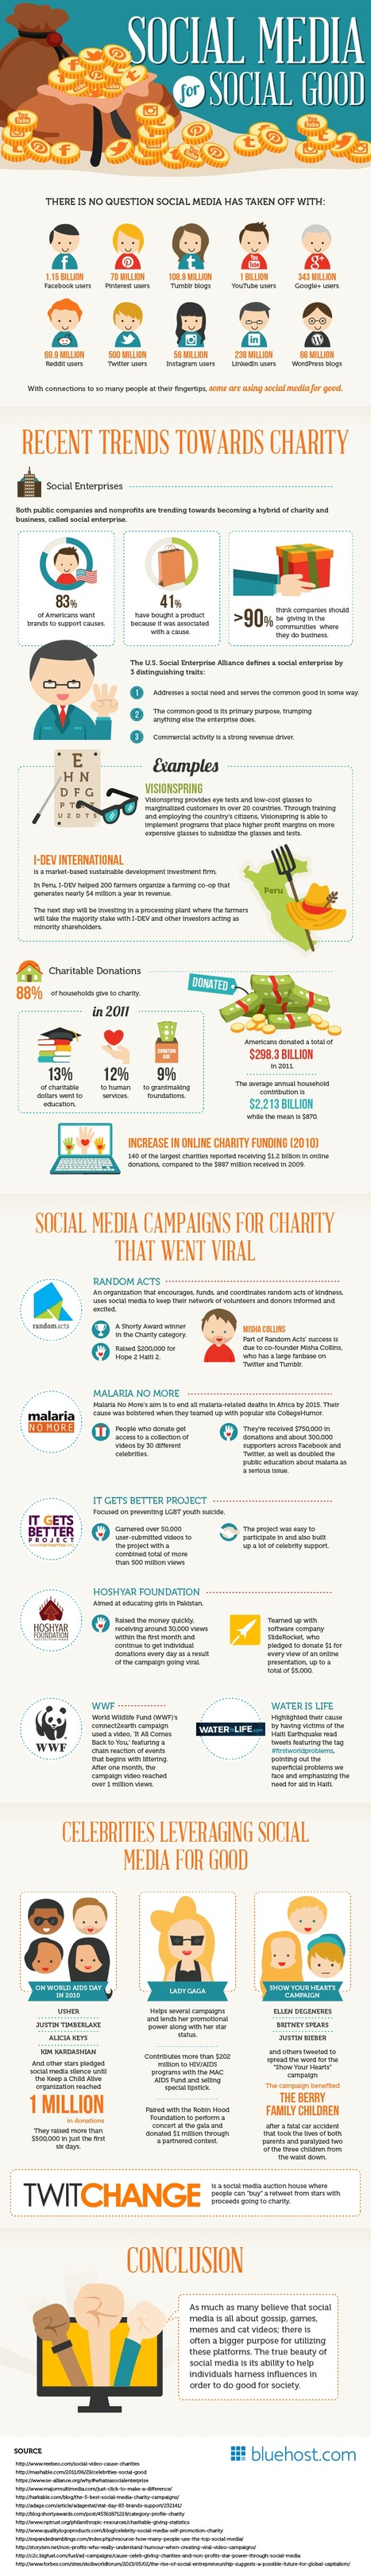 Social Media For Social Good #infographic | small business | Scoop.it